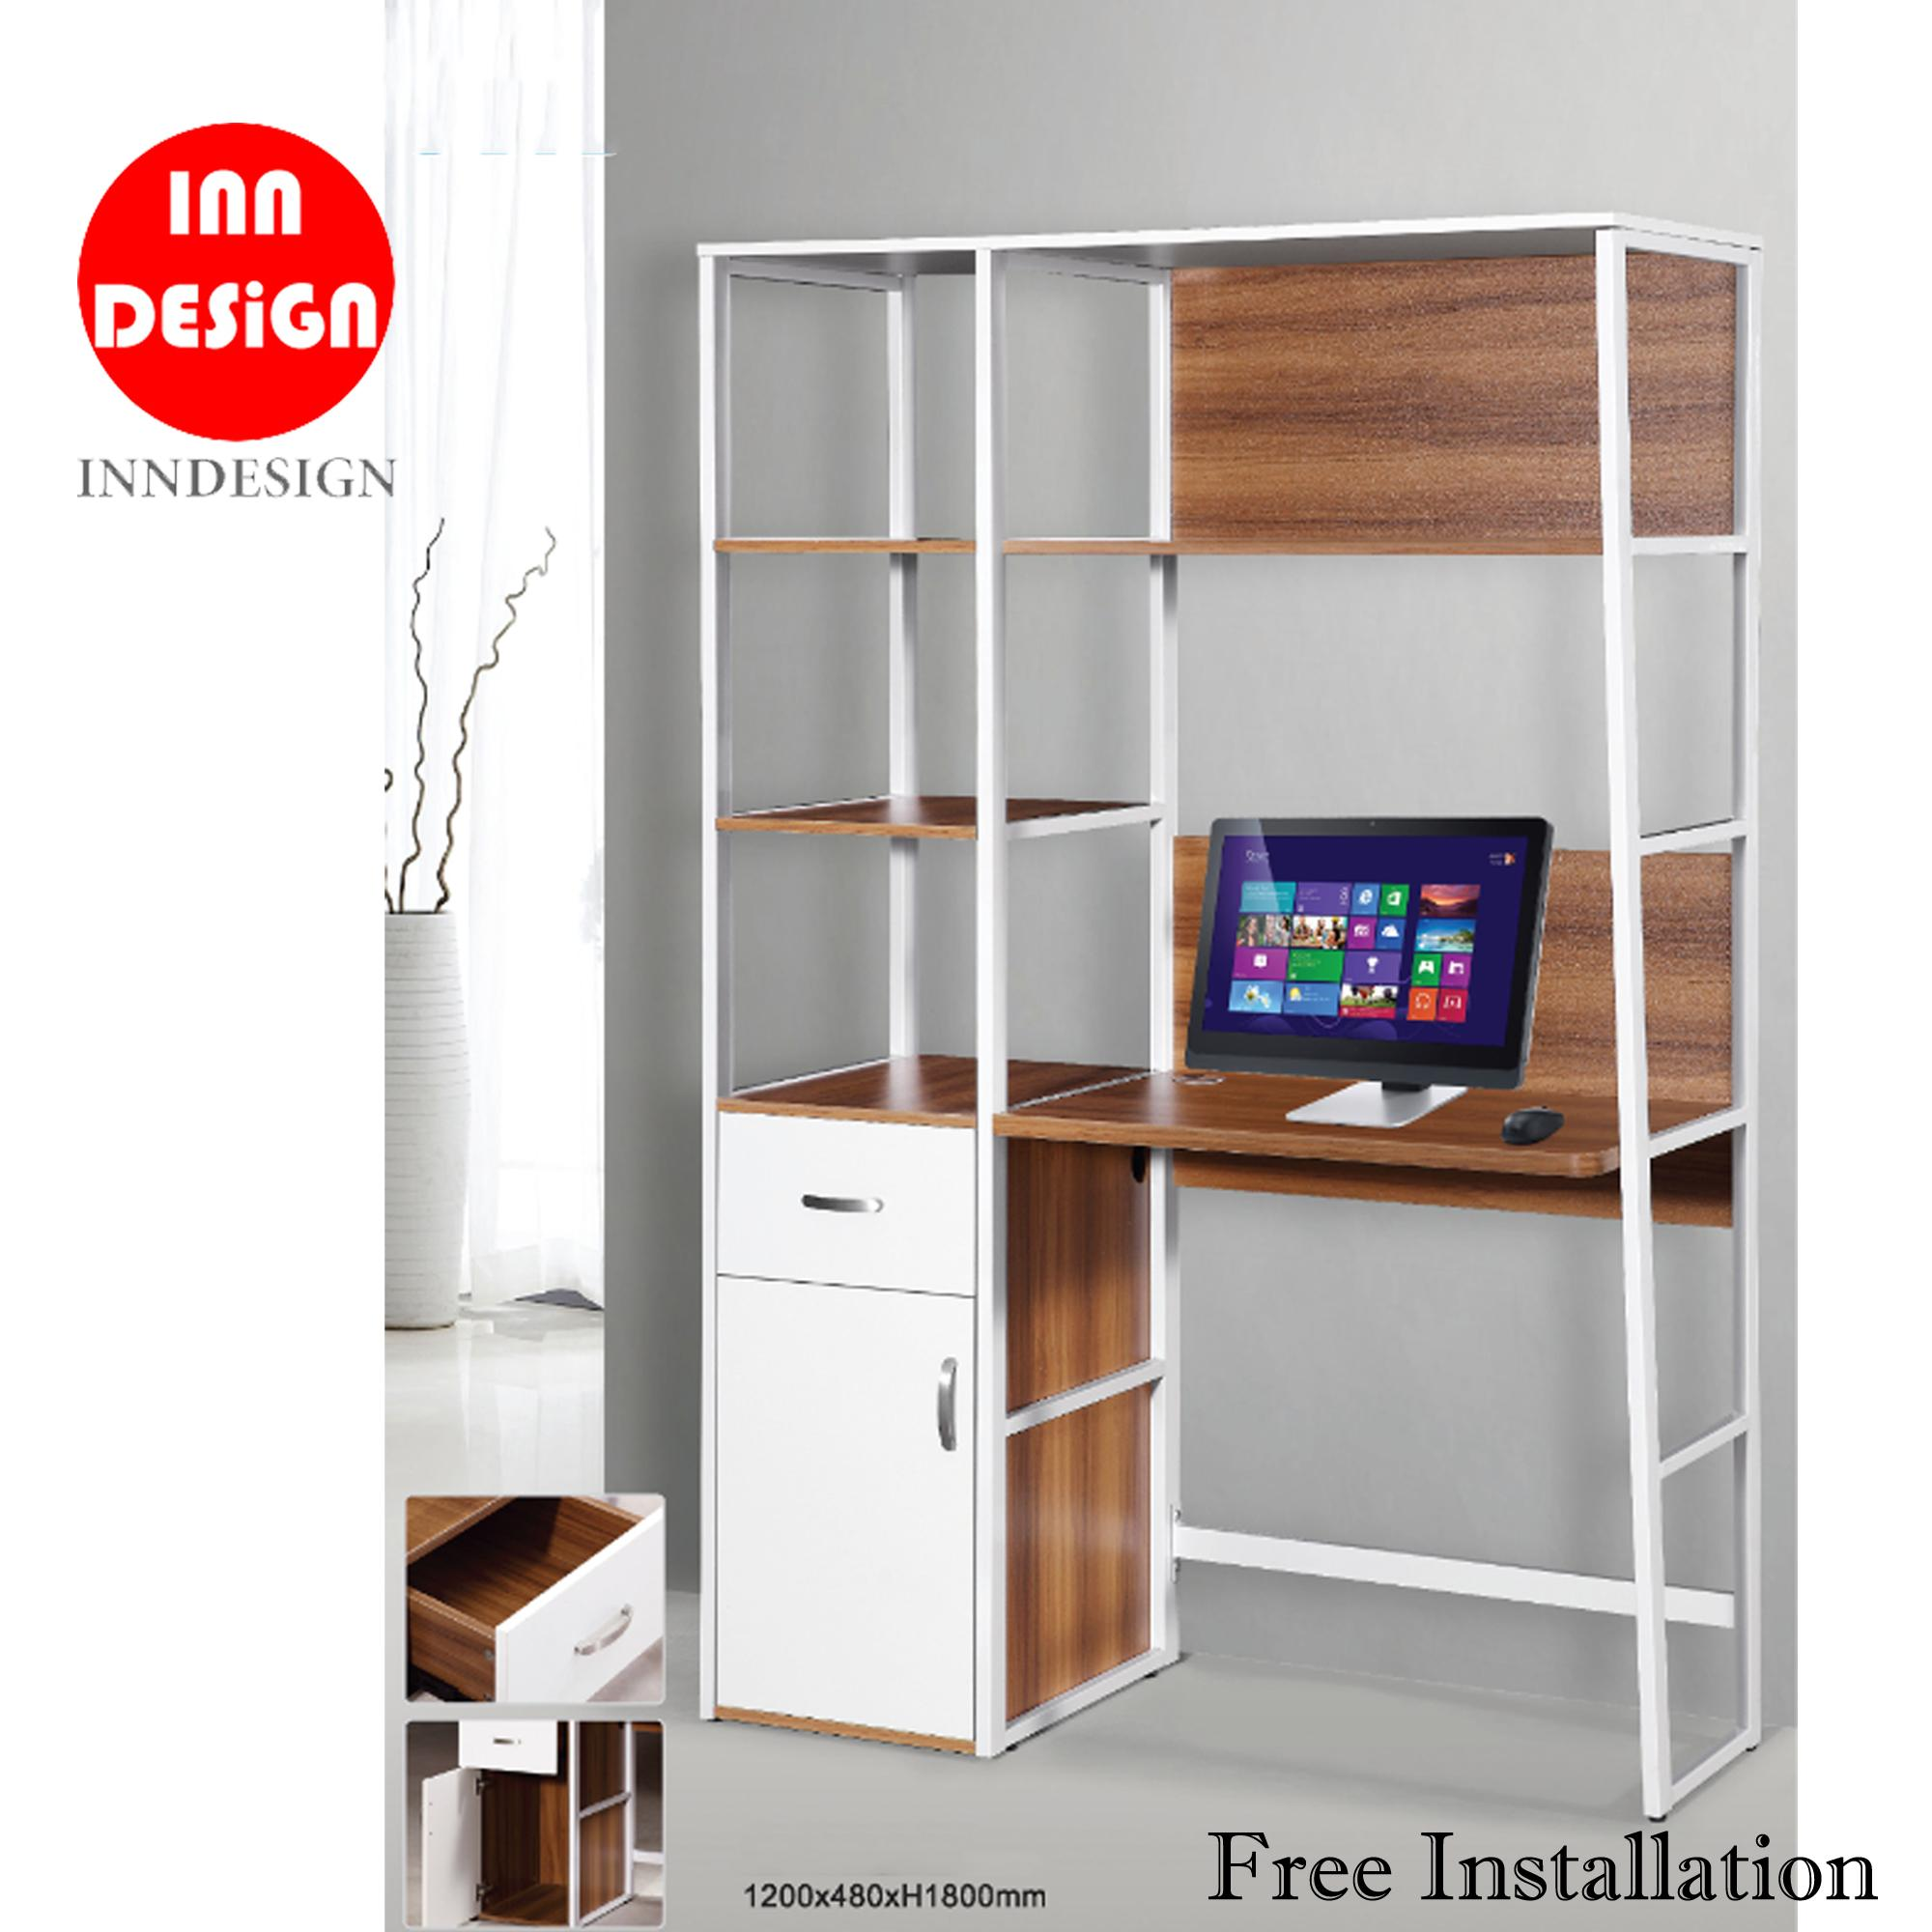 Mike Study Table / Study Desk with Bookshelf (Free Installation)